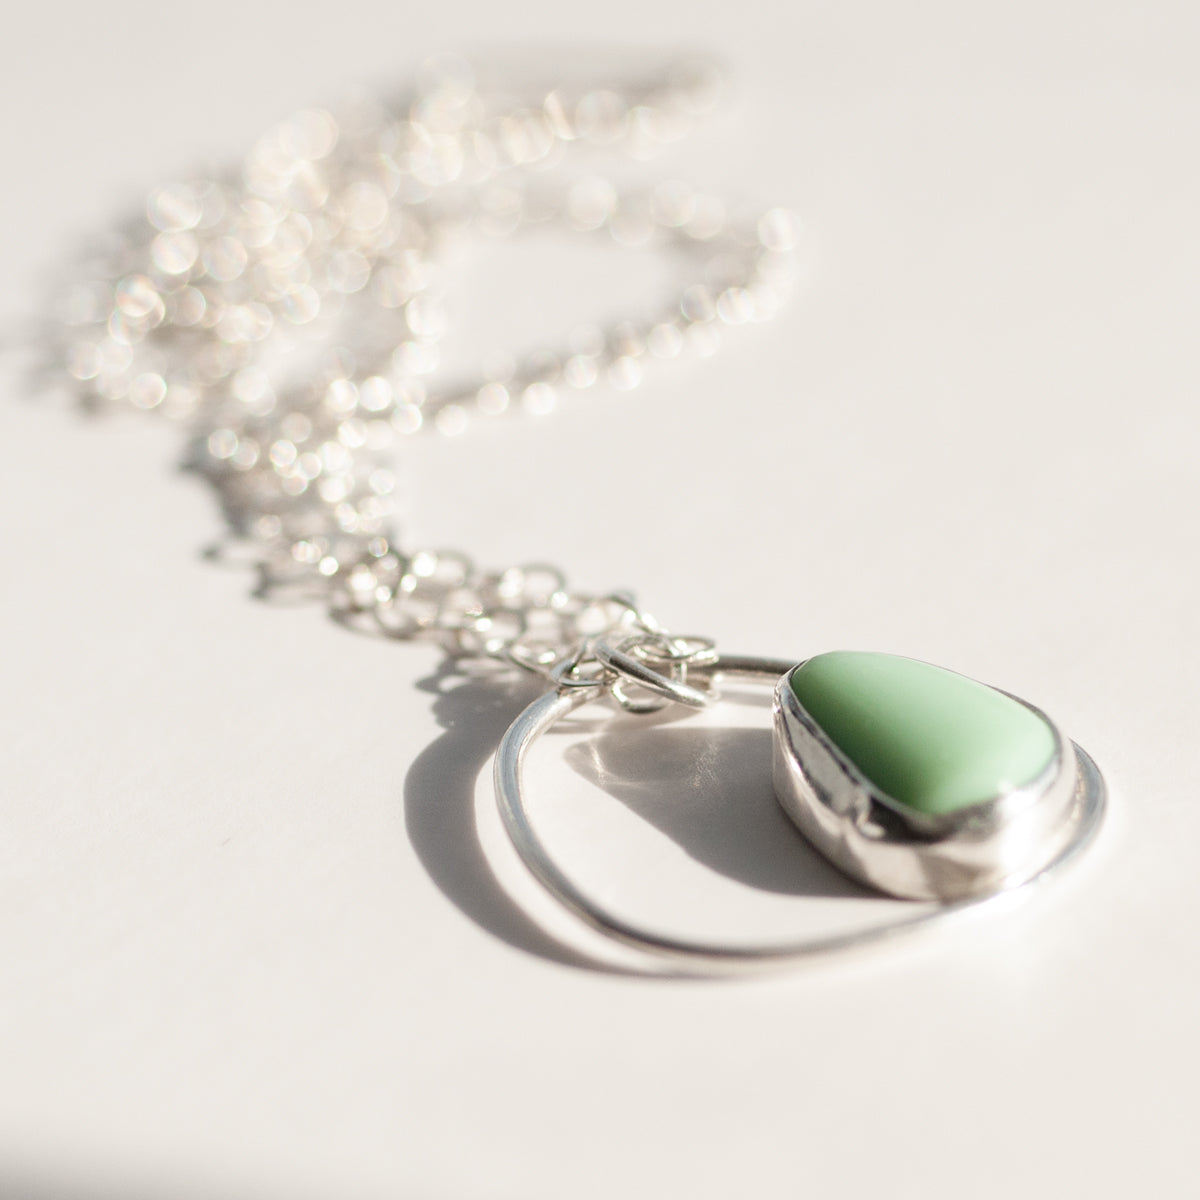 Single Pebble Necklace - Pendant Style